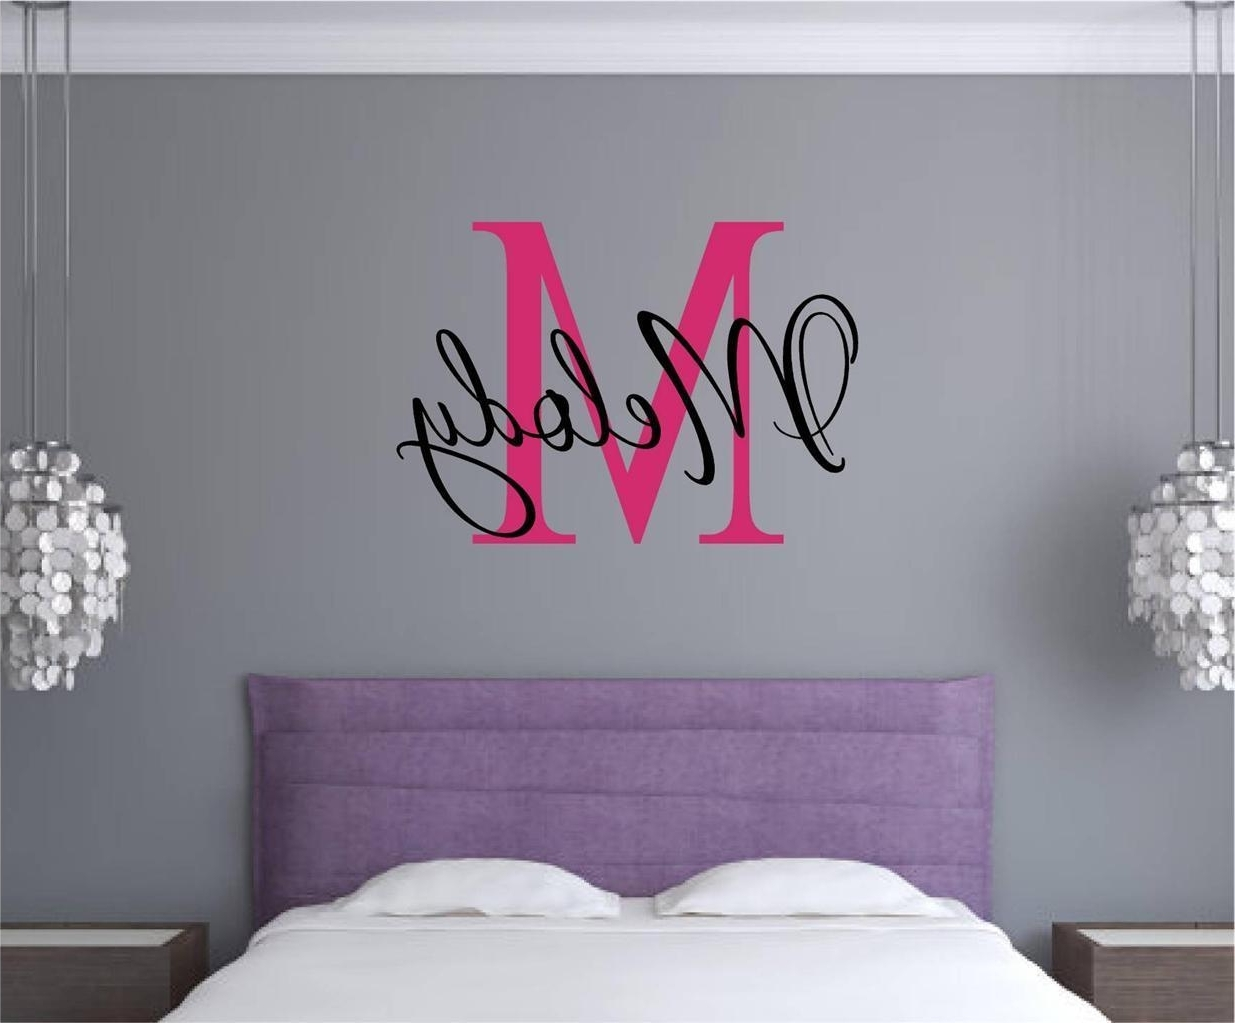 Most Recent Johannesburg Canvas Wall Art Intended For Wall Art Designs: Name Wall Art Custom Monogram Name Vinyl Decal (View 6 of 15)